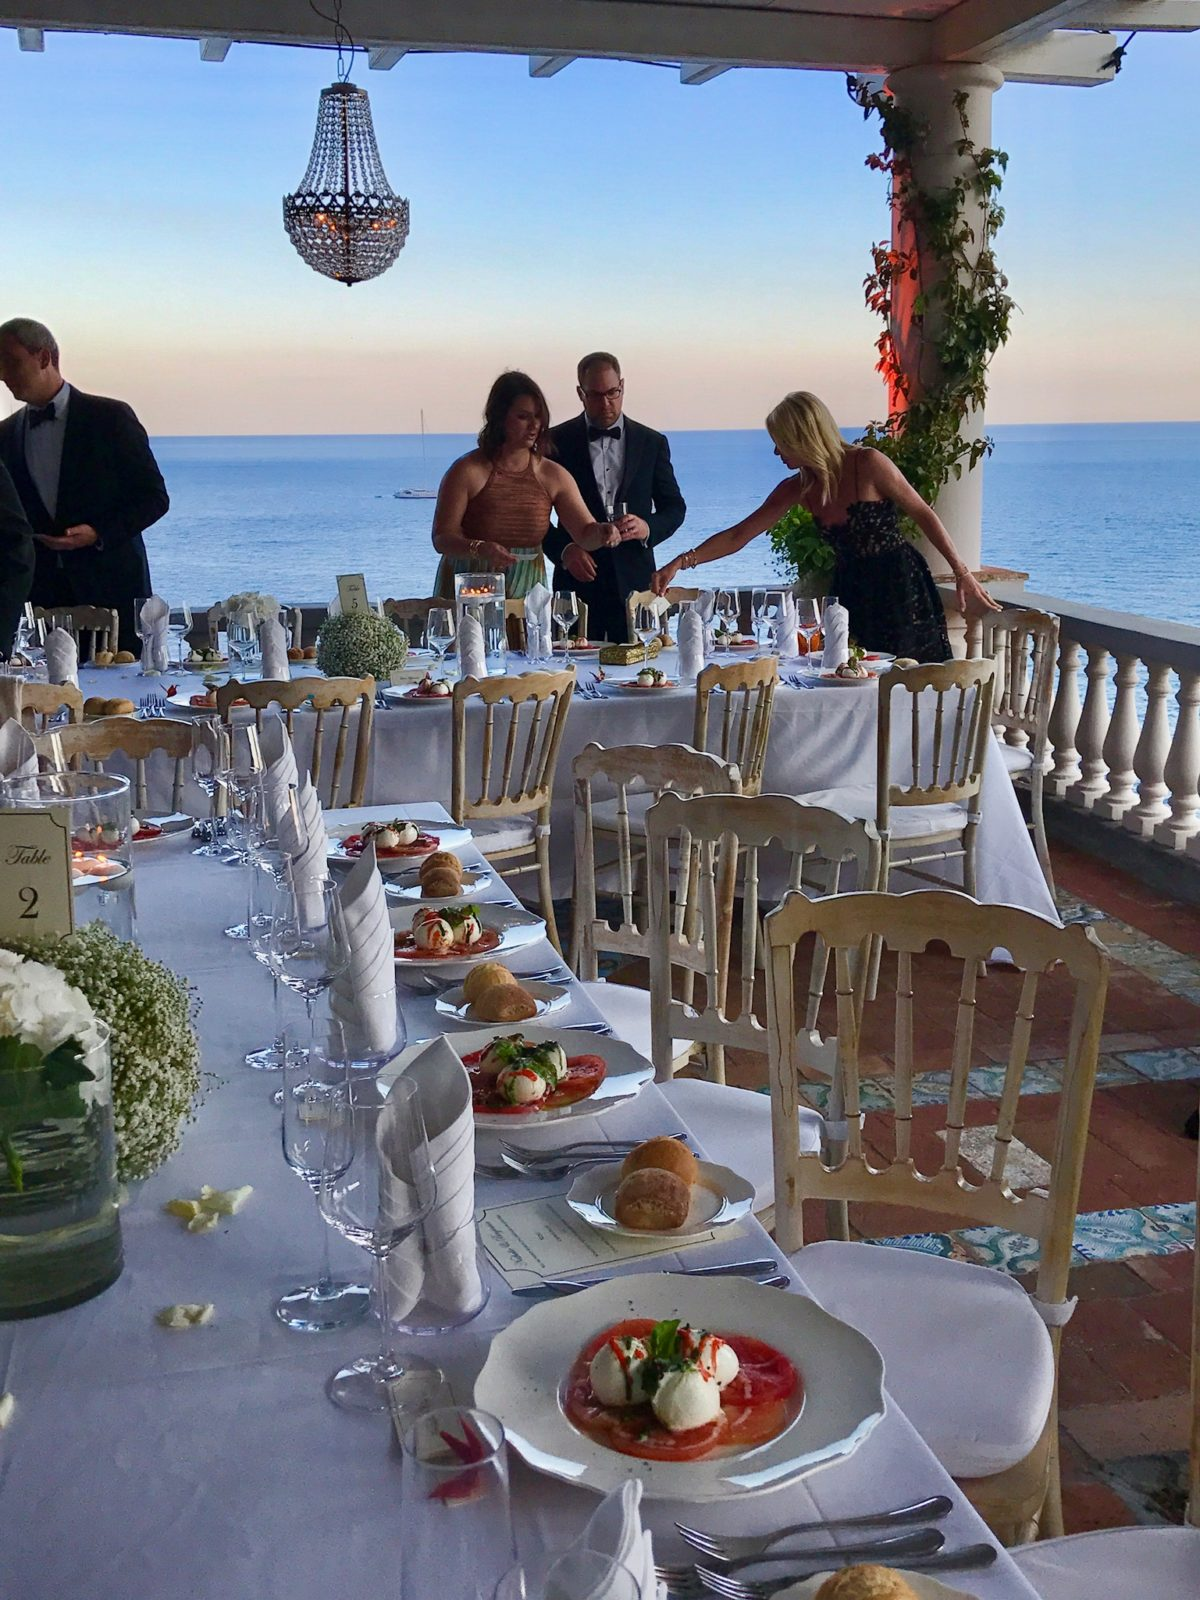 Nathalie and Benjamin wedding in Positano (4)